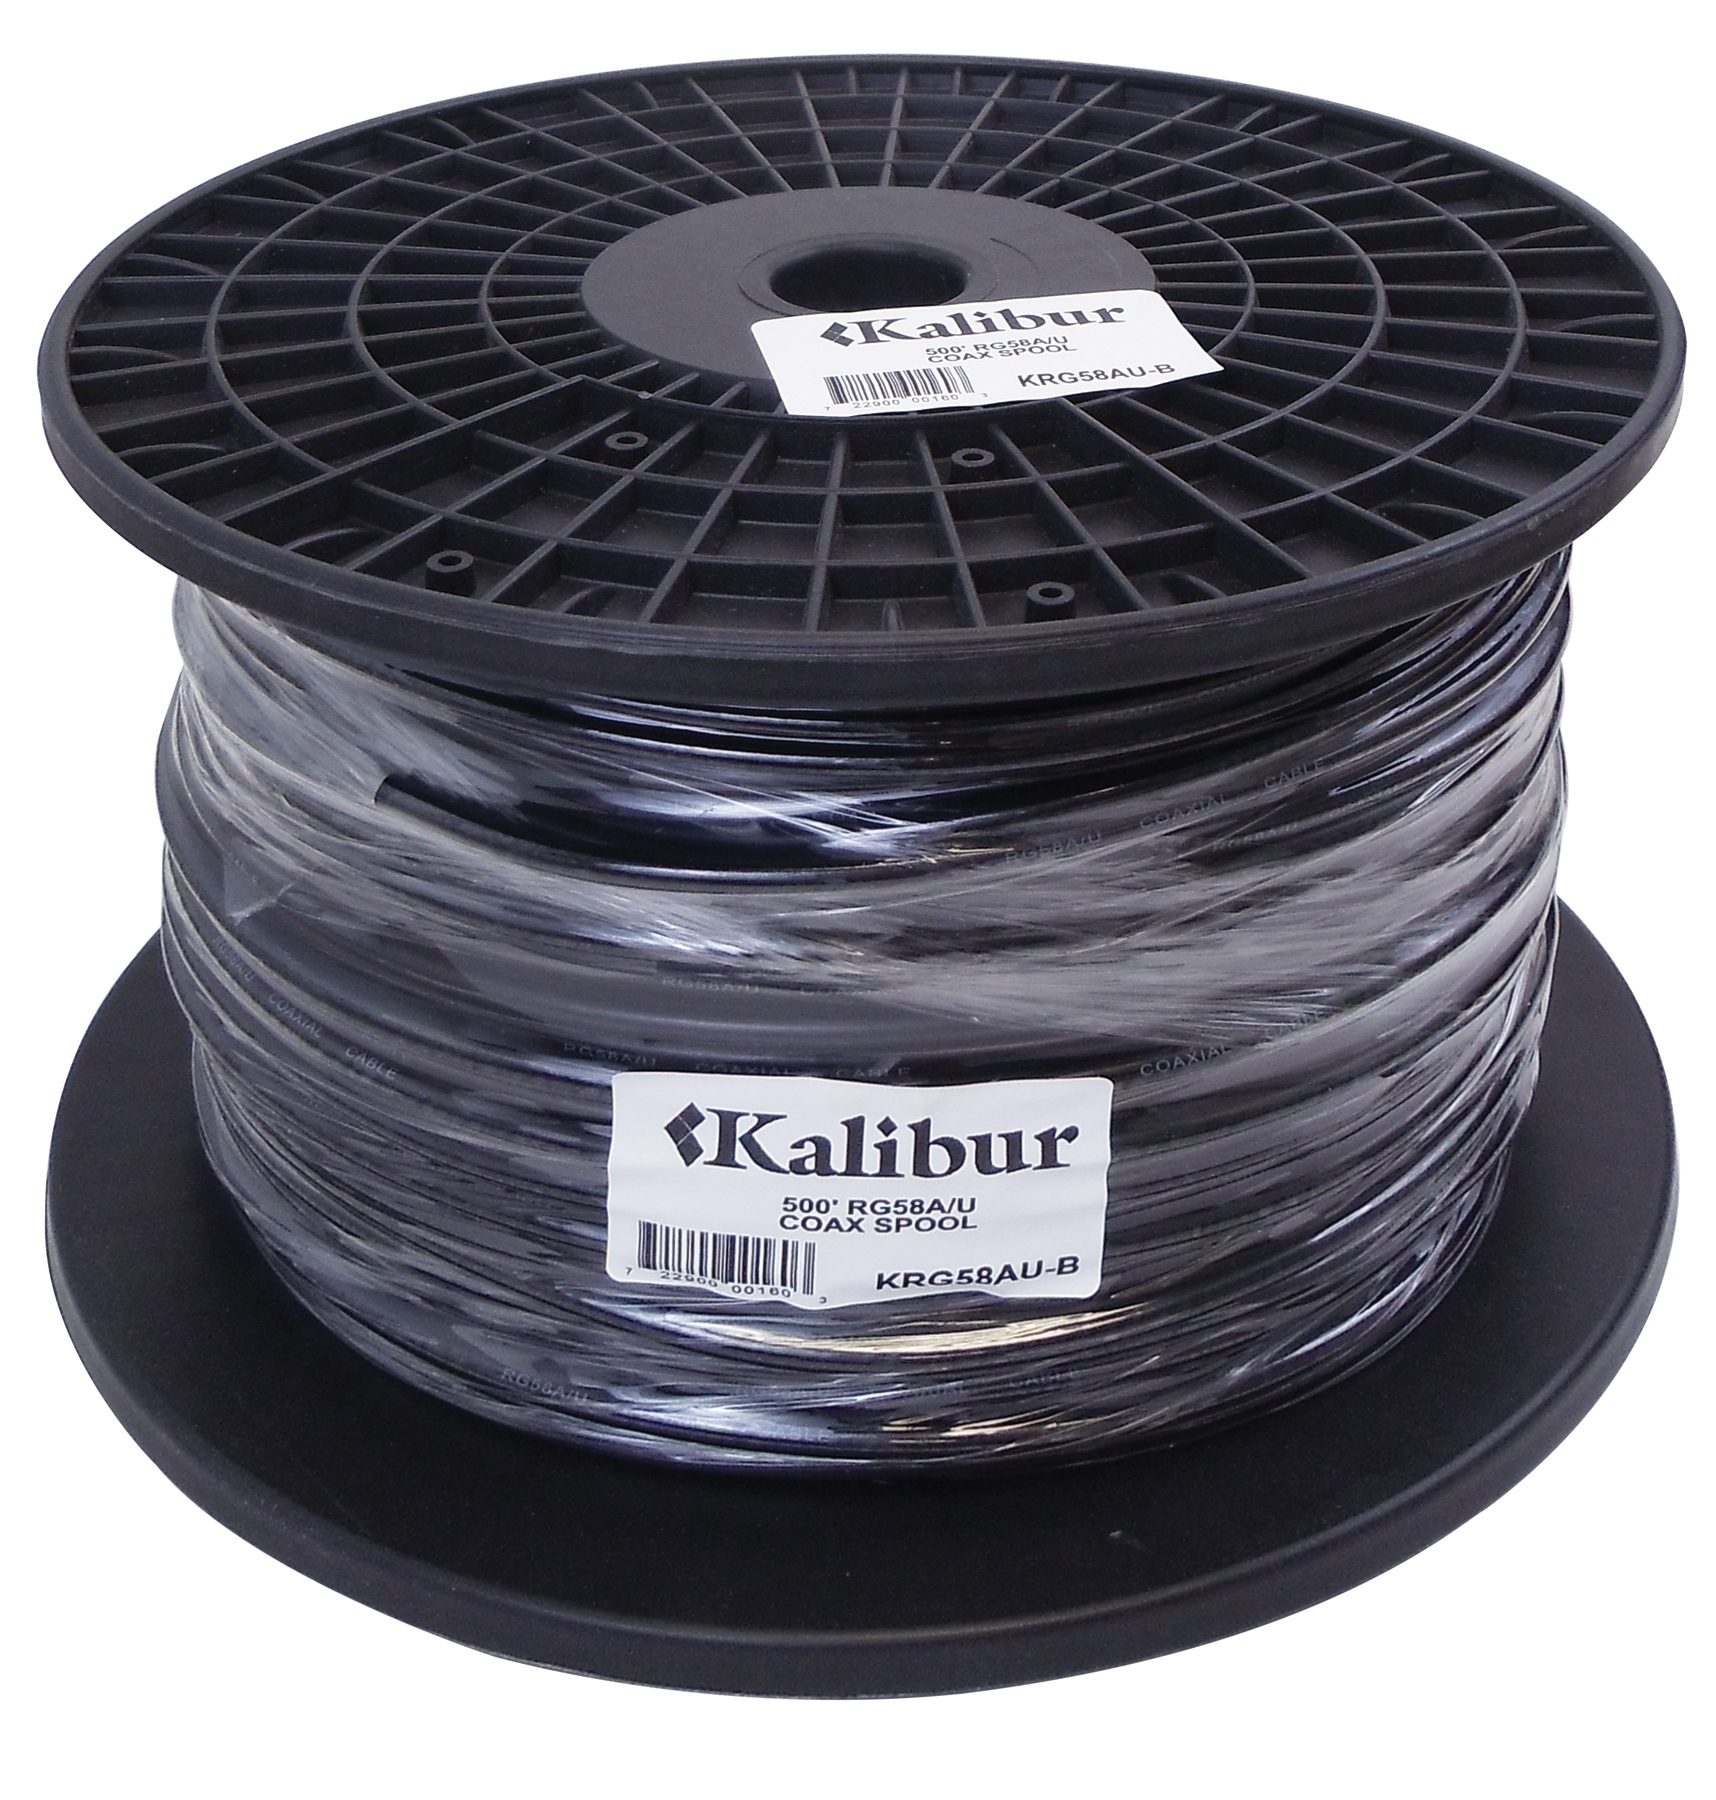 KRG58AU-B - Kalibur 500' Spool Of RG58A/U Coax Cable